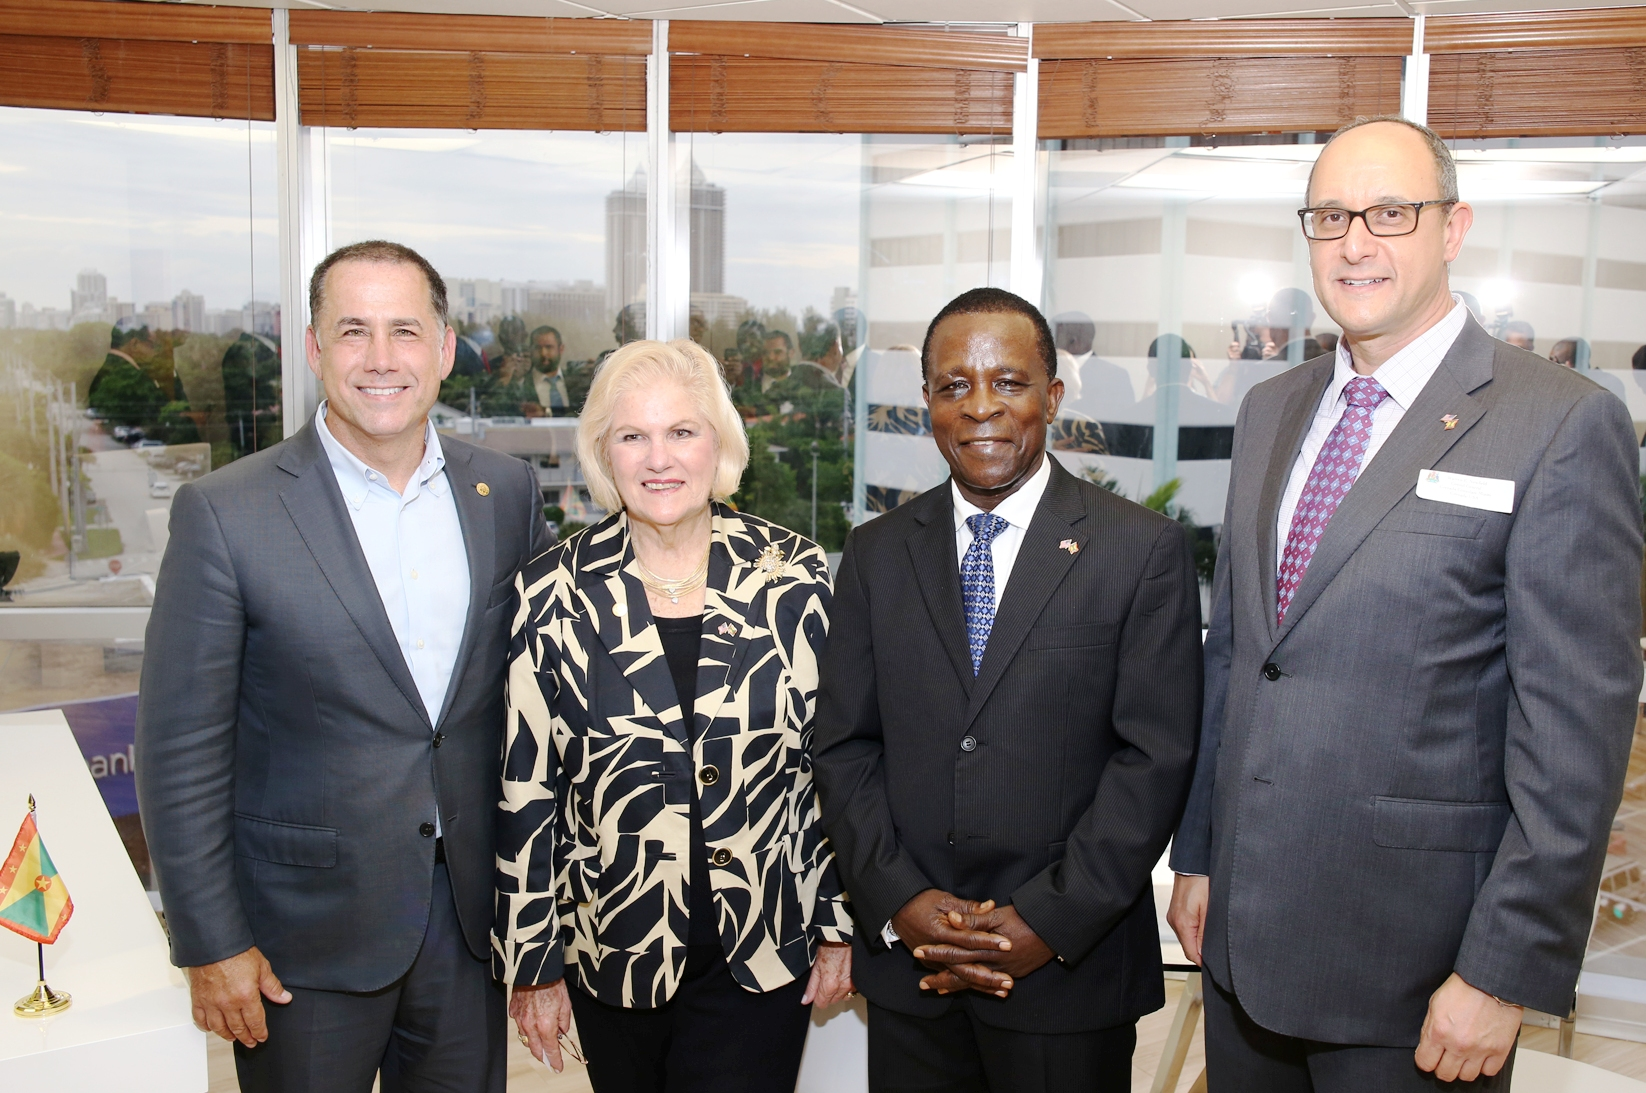 Mayor Philip Levine, City Commissioner Joy Malakoff, Grenada's Prime Minister Keith Mitchell and newly appointed Consul General Warren E. Newfield at the opening ceremony of the first Consulate in the City of Miami Beach. Photo: Florida National News.